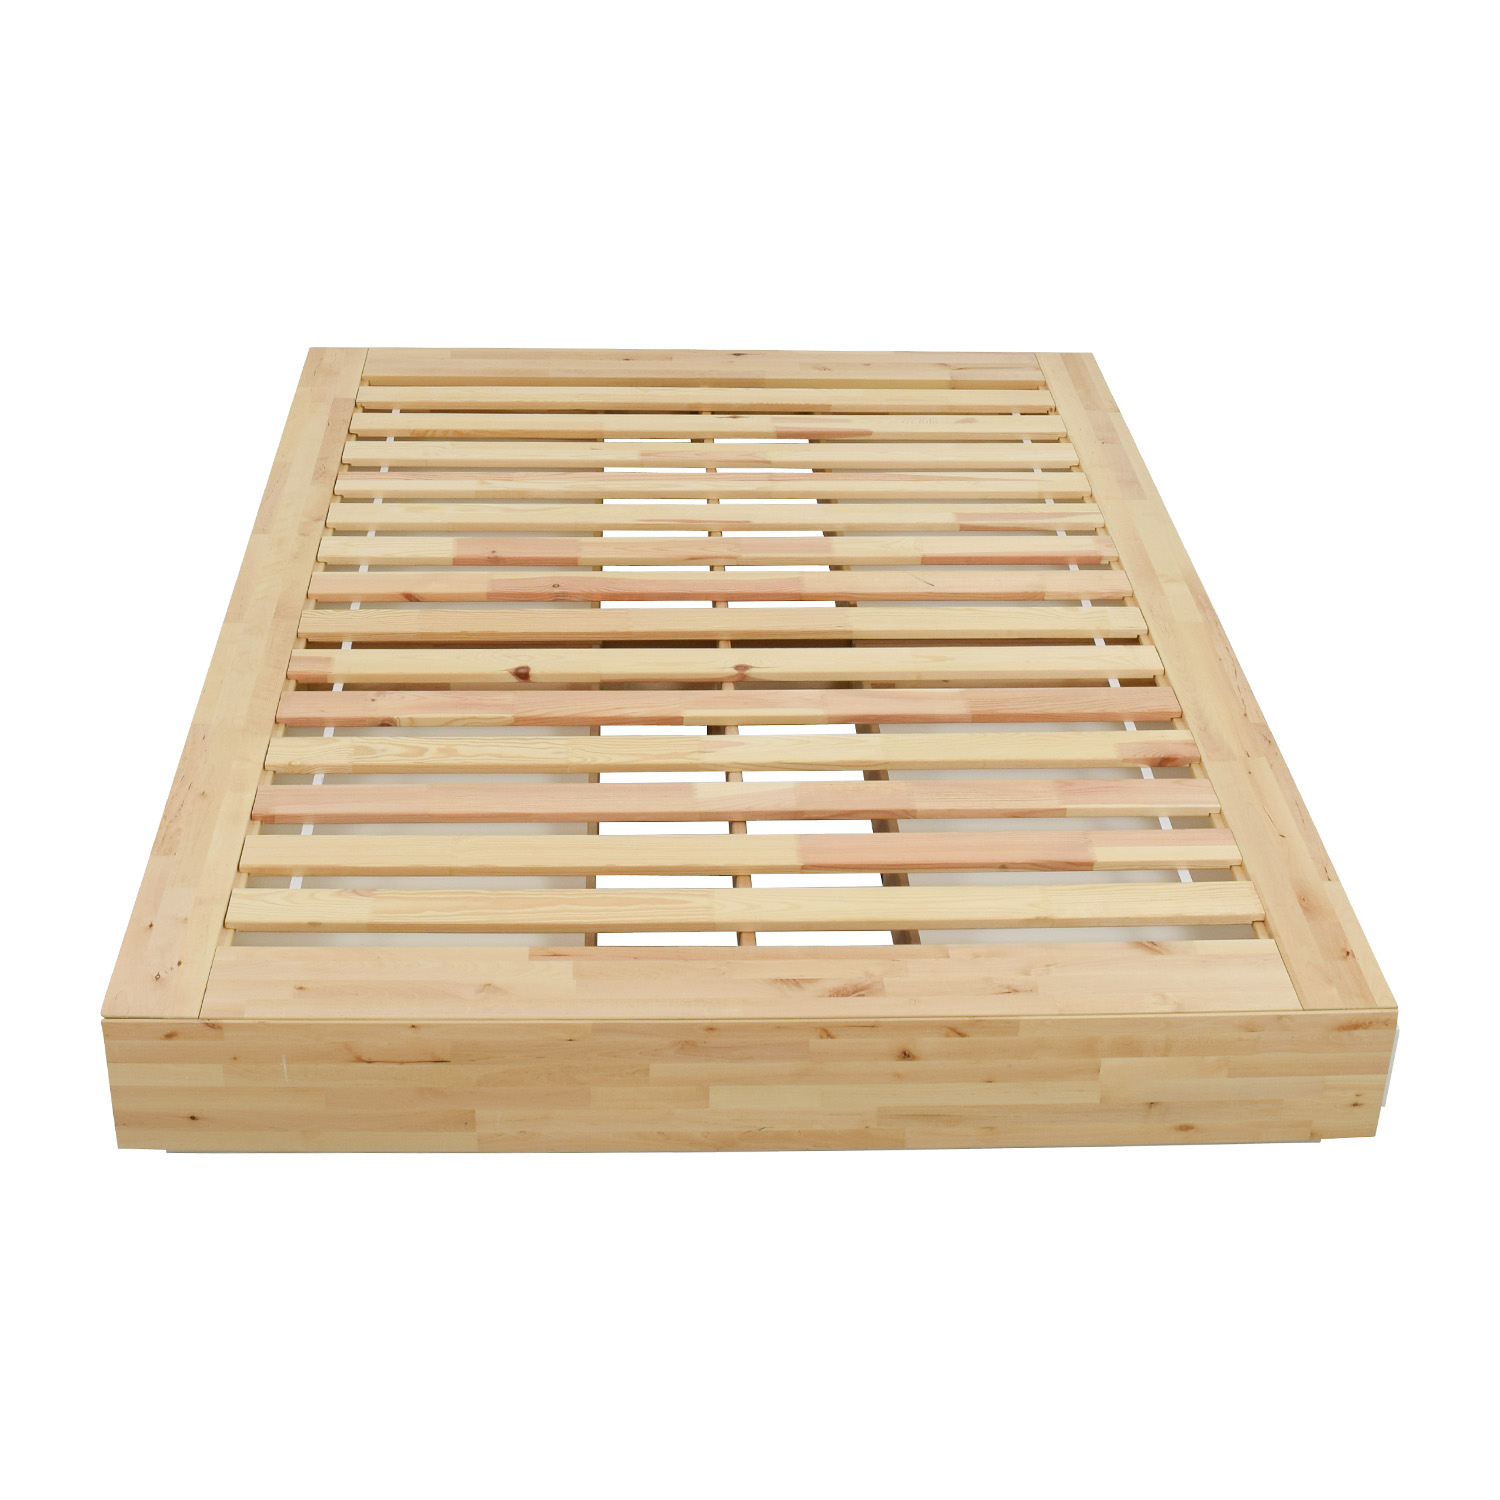 IKEA Birch Wood Queen Bed Frame with Storage Beds